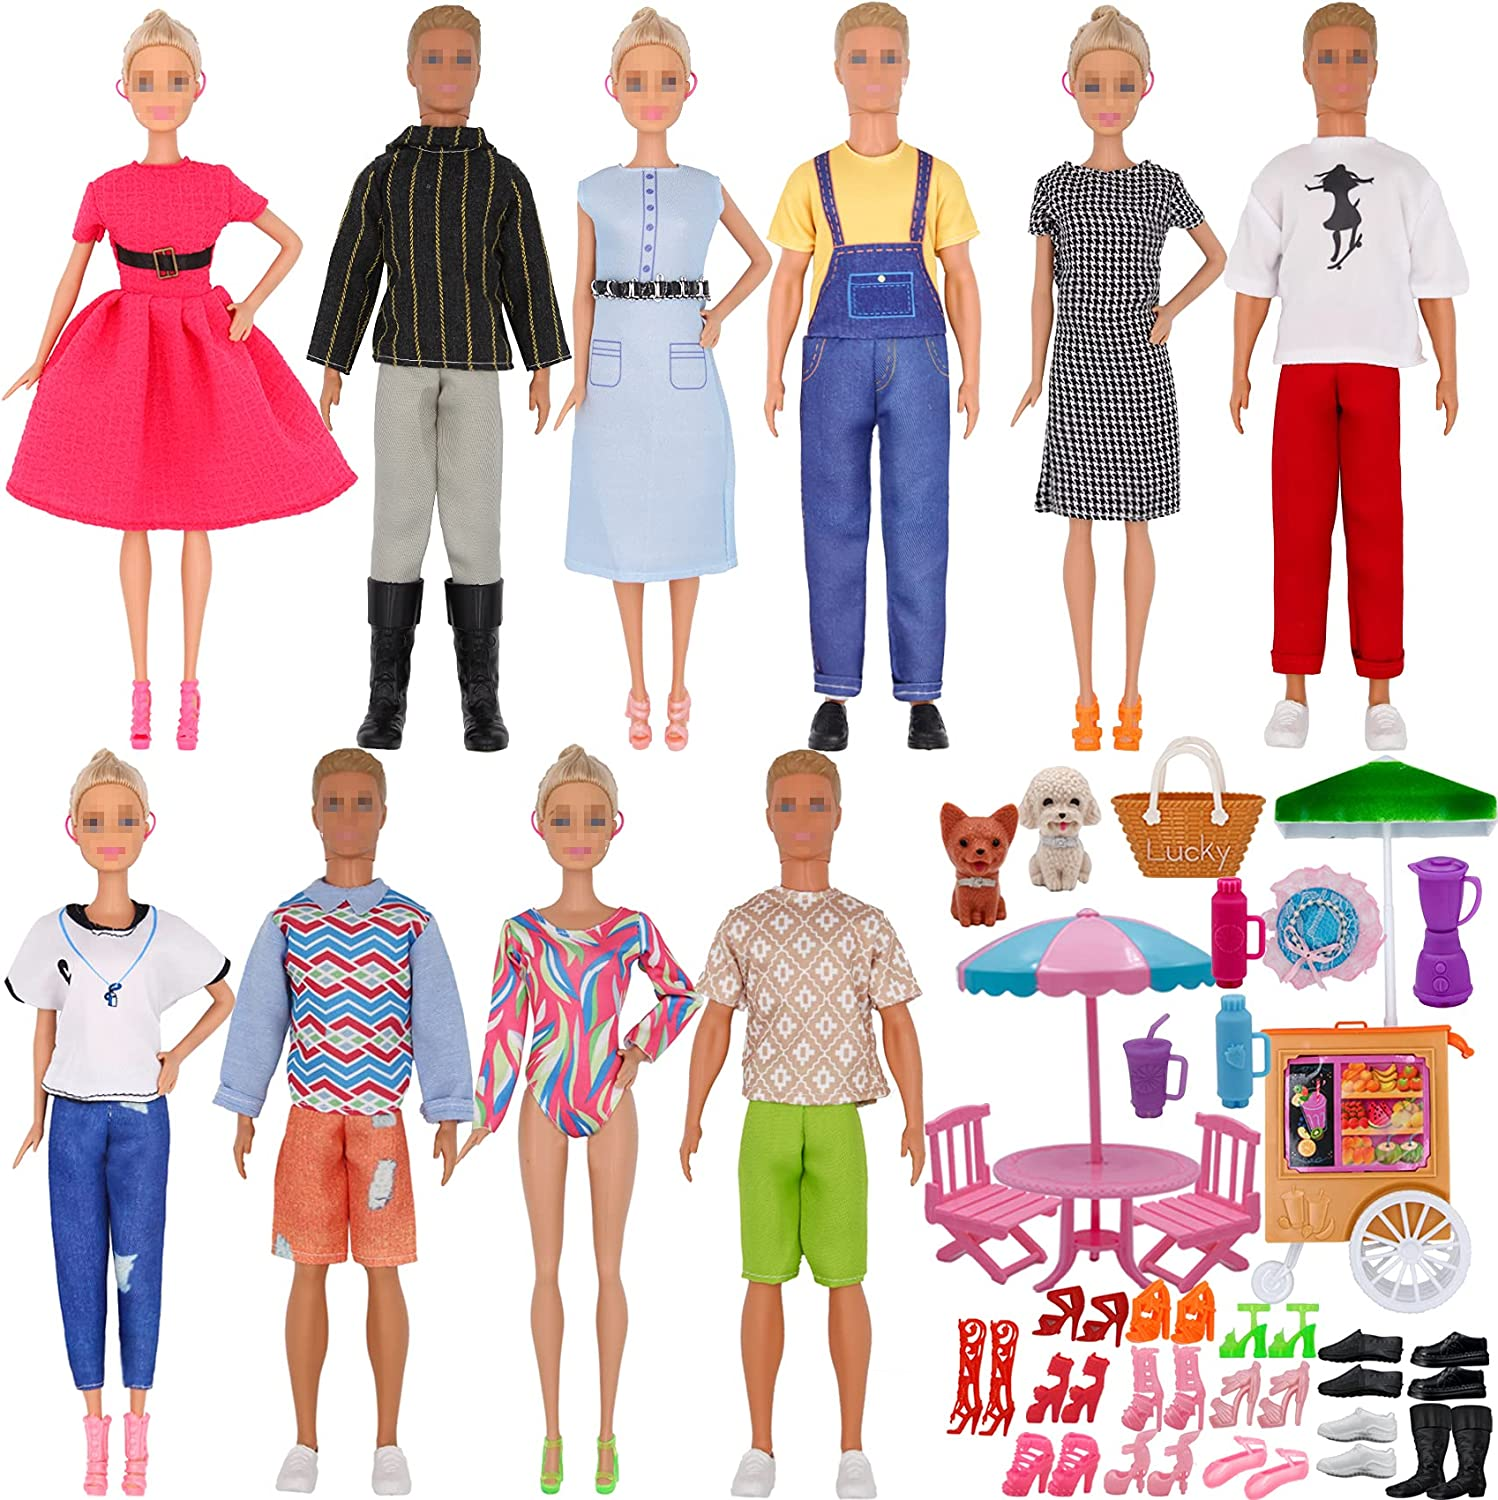 ztweden Genuine Free Super popular specialty store Shipping 55Pcs Doll Clothes and Boy for 12 Inch Accessories